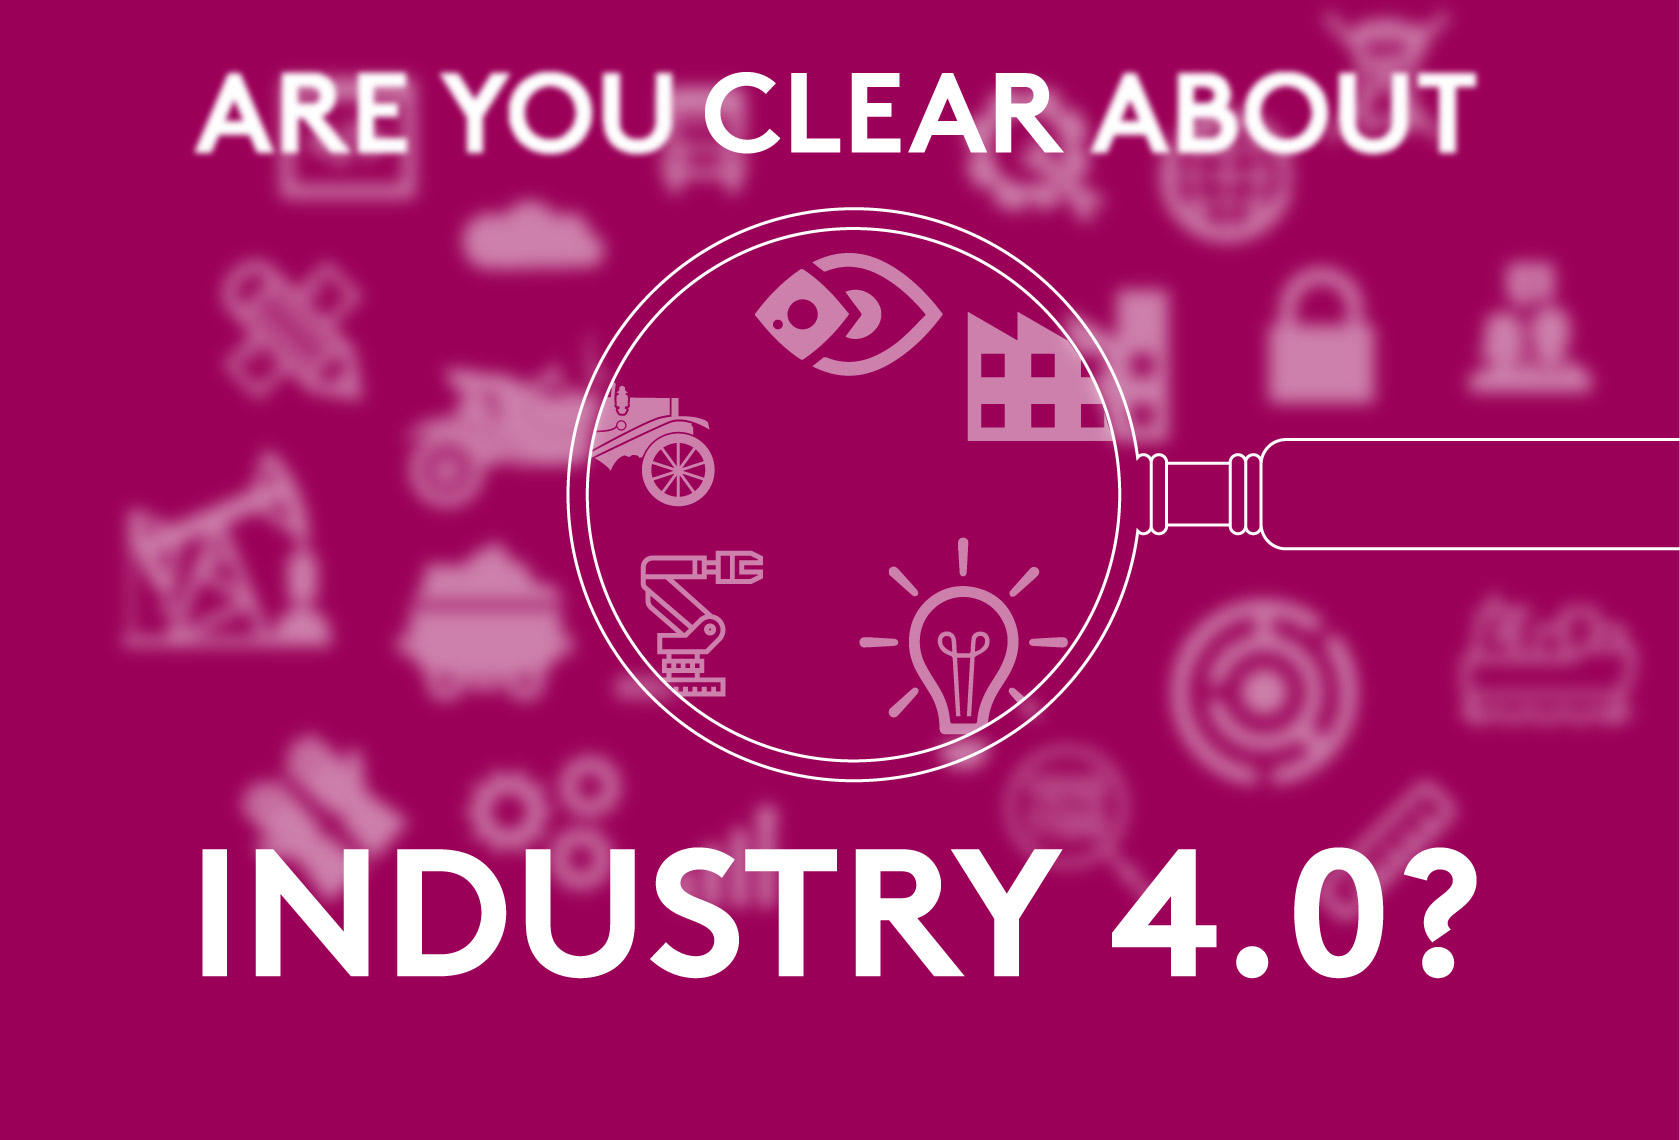 Are you clear about Industry 4.0?